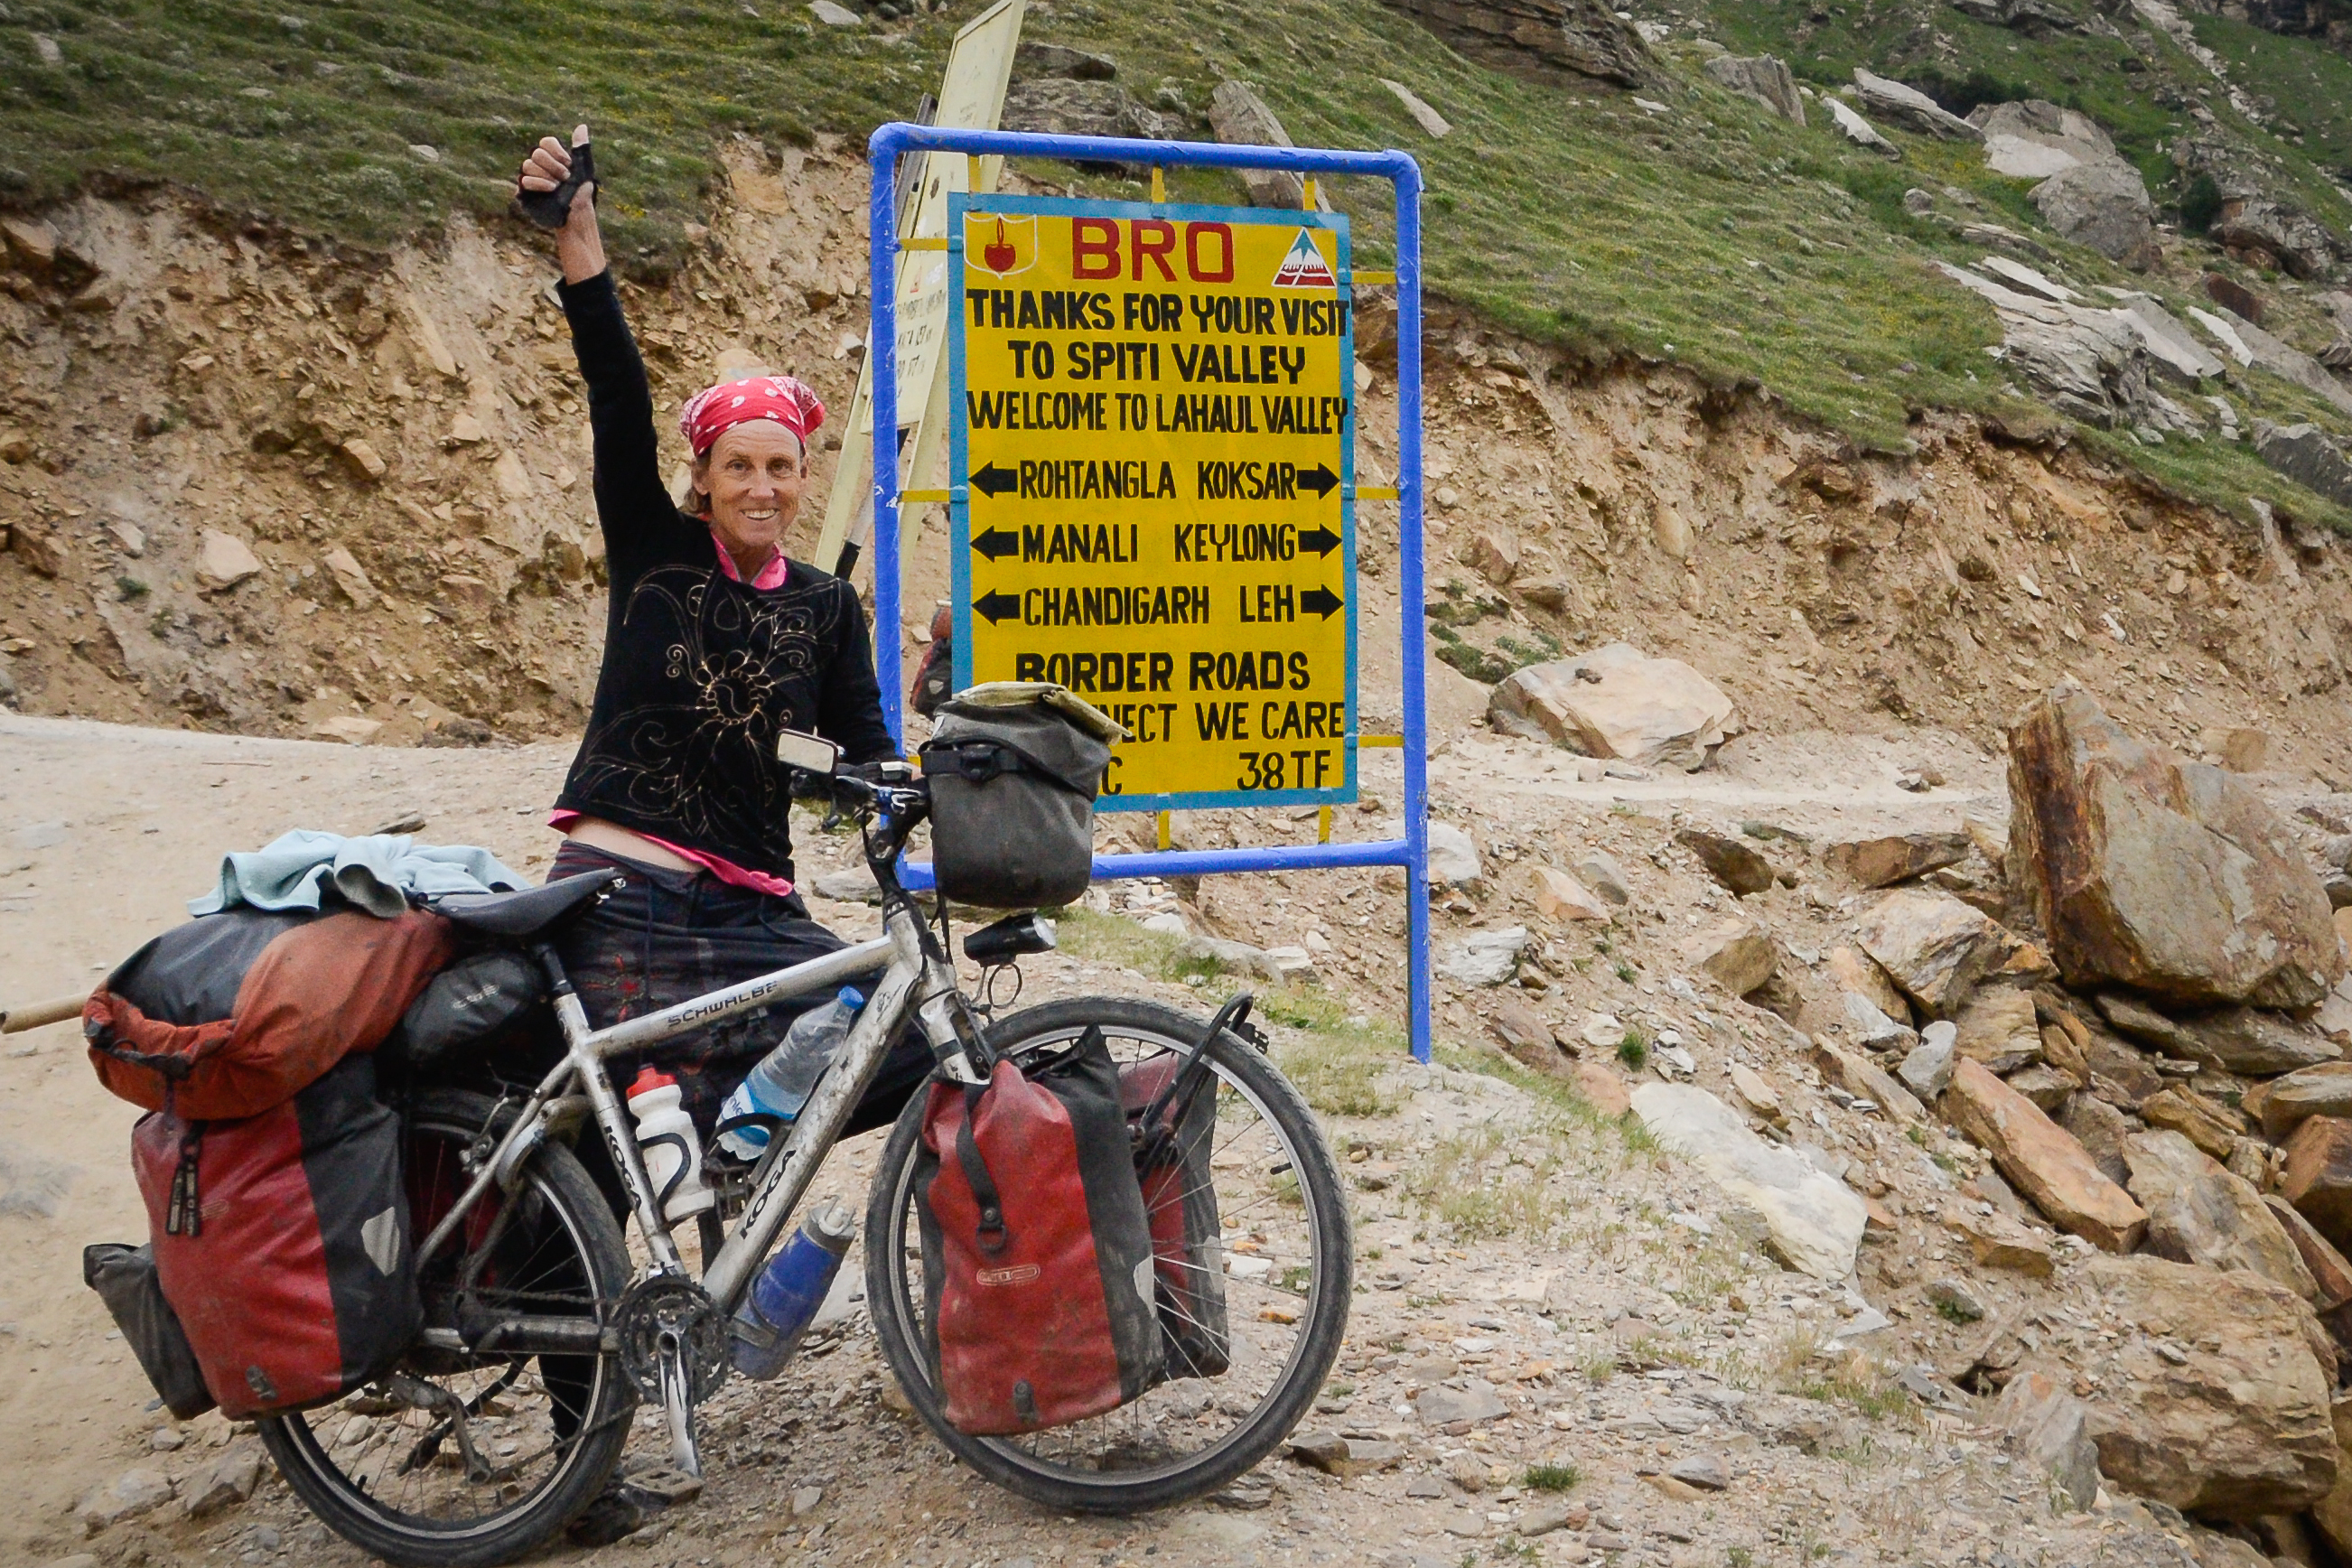 Crossing of Spiti Valley and Leh-Manali Road